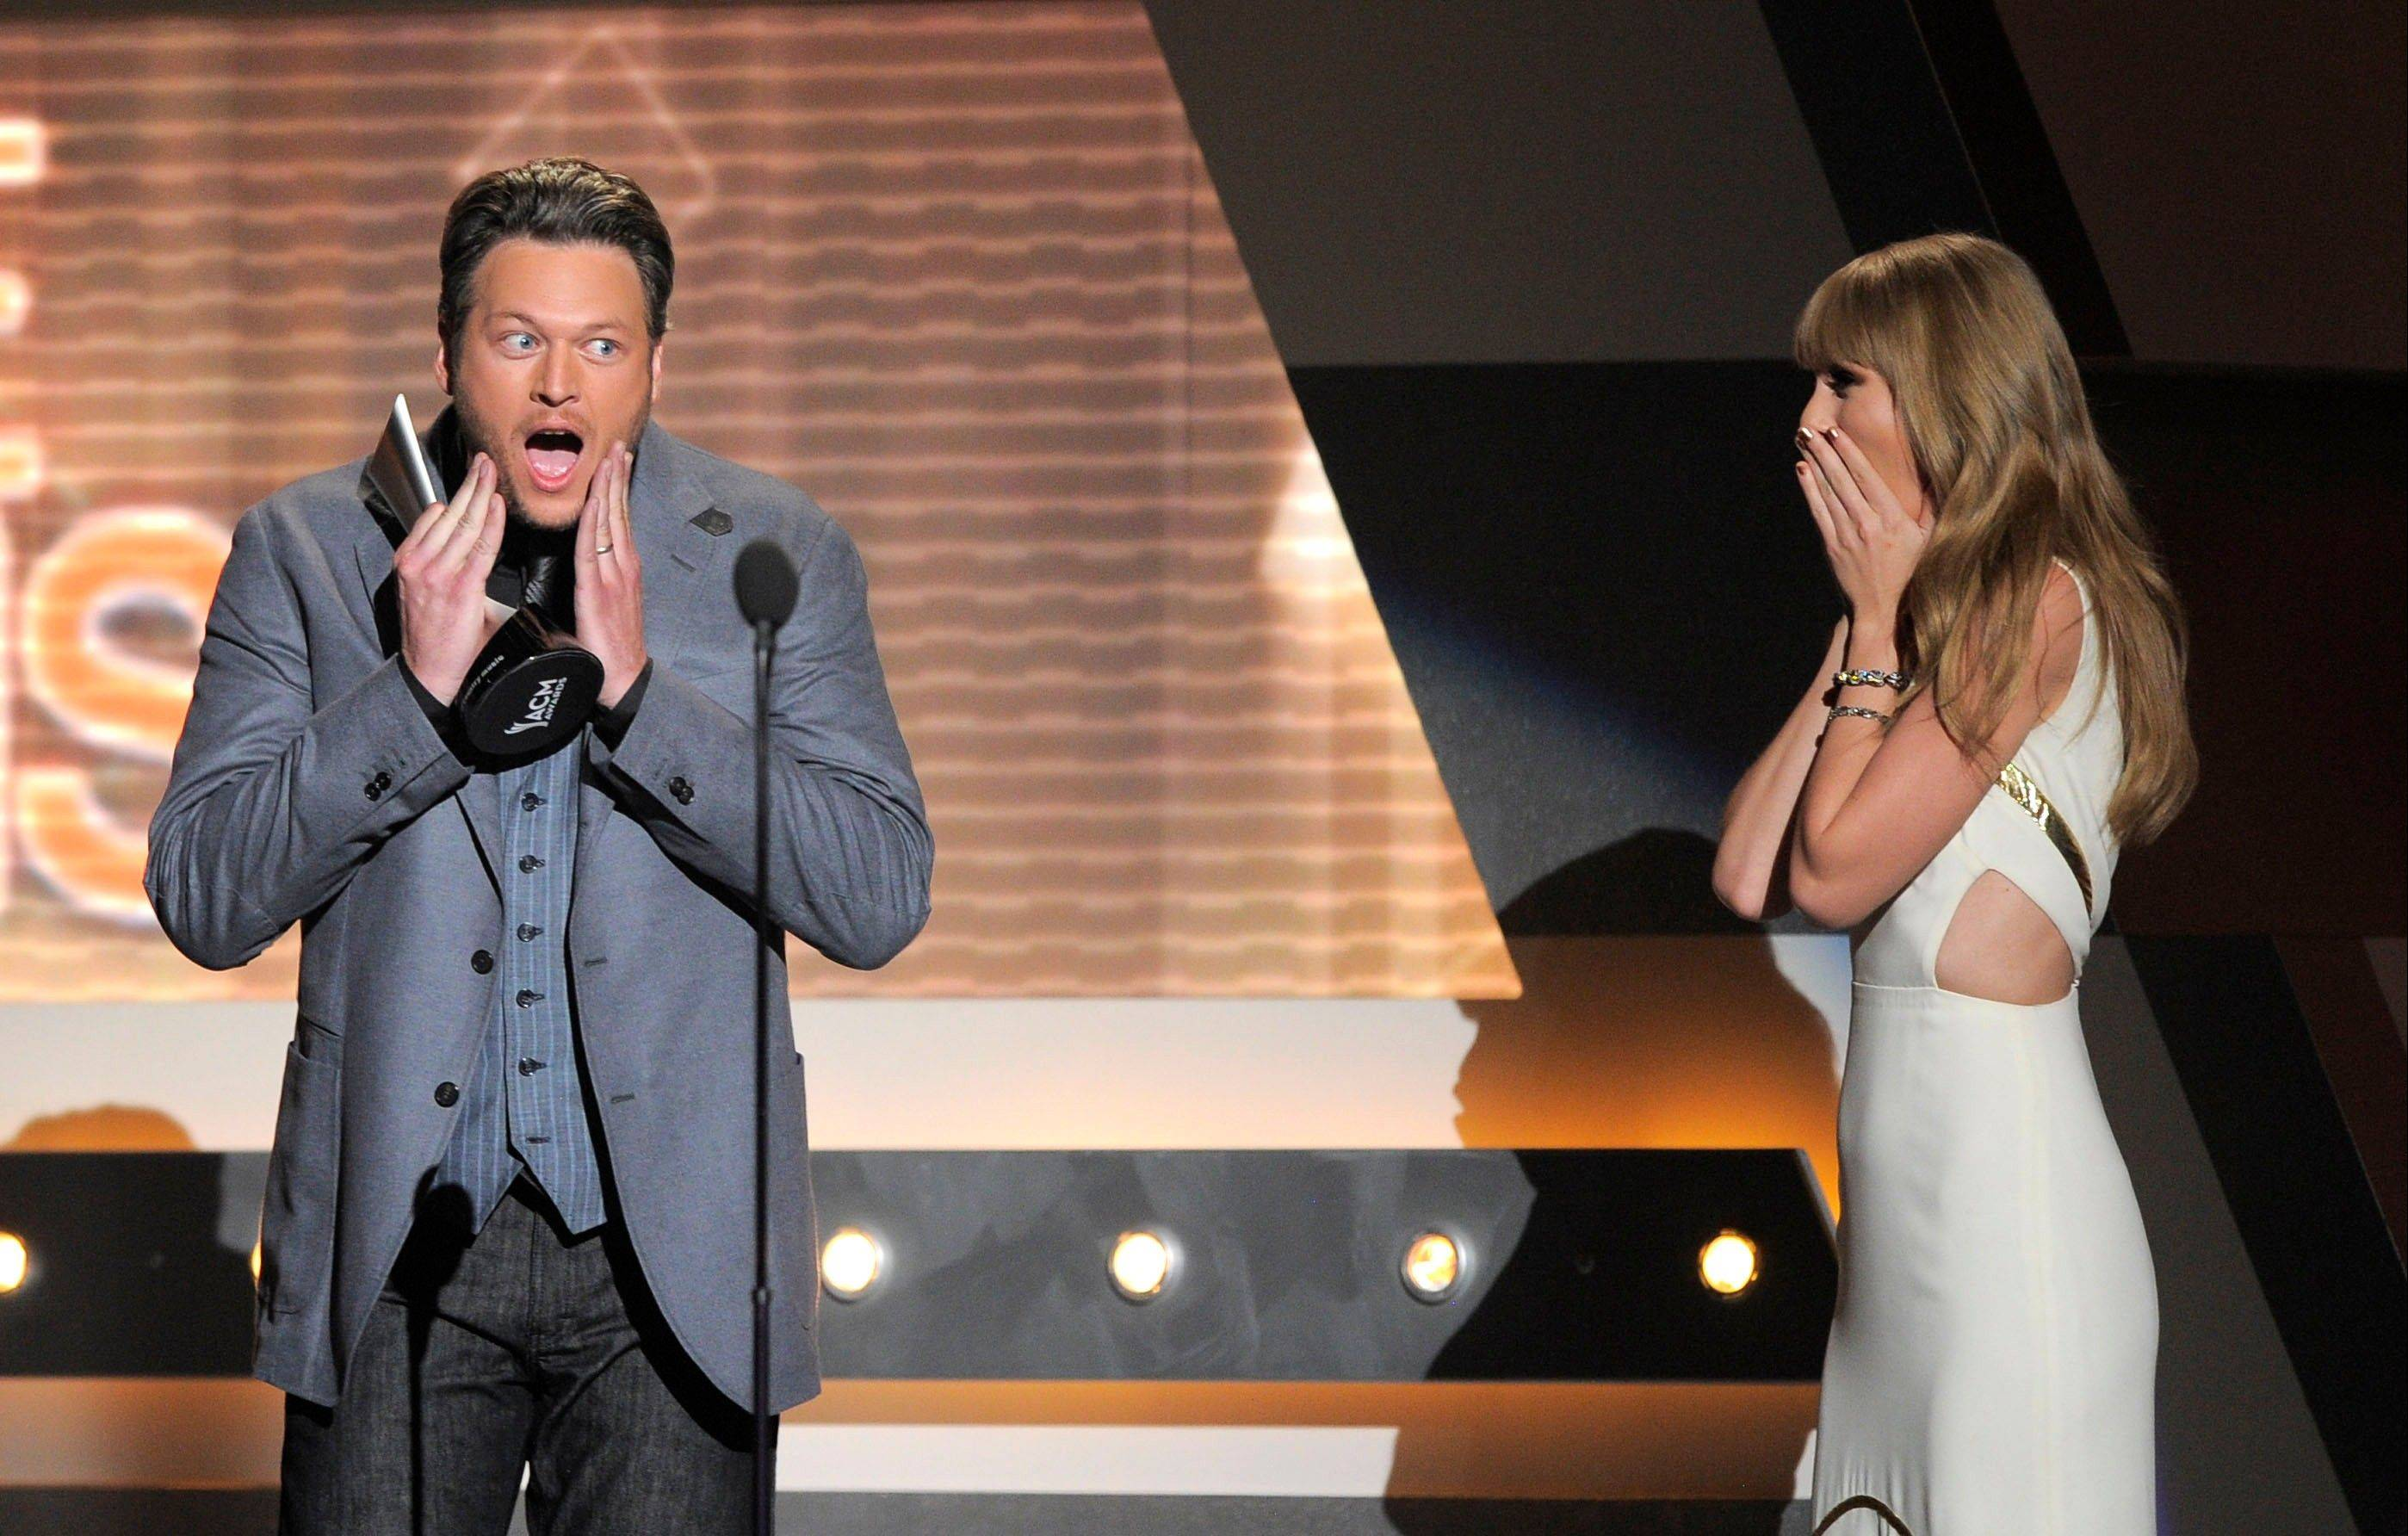 Taylor Swift, right, presents the award for male vocalist of the year to Blake Shelton at the 47th Annual Academy of Country Music Awards on Sunday in Las Vegas. Swift would grab an award of her own, beating out Shelton and a few others for enterainer of the year.